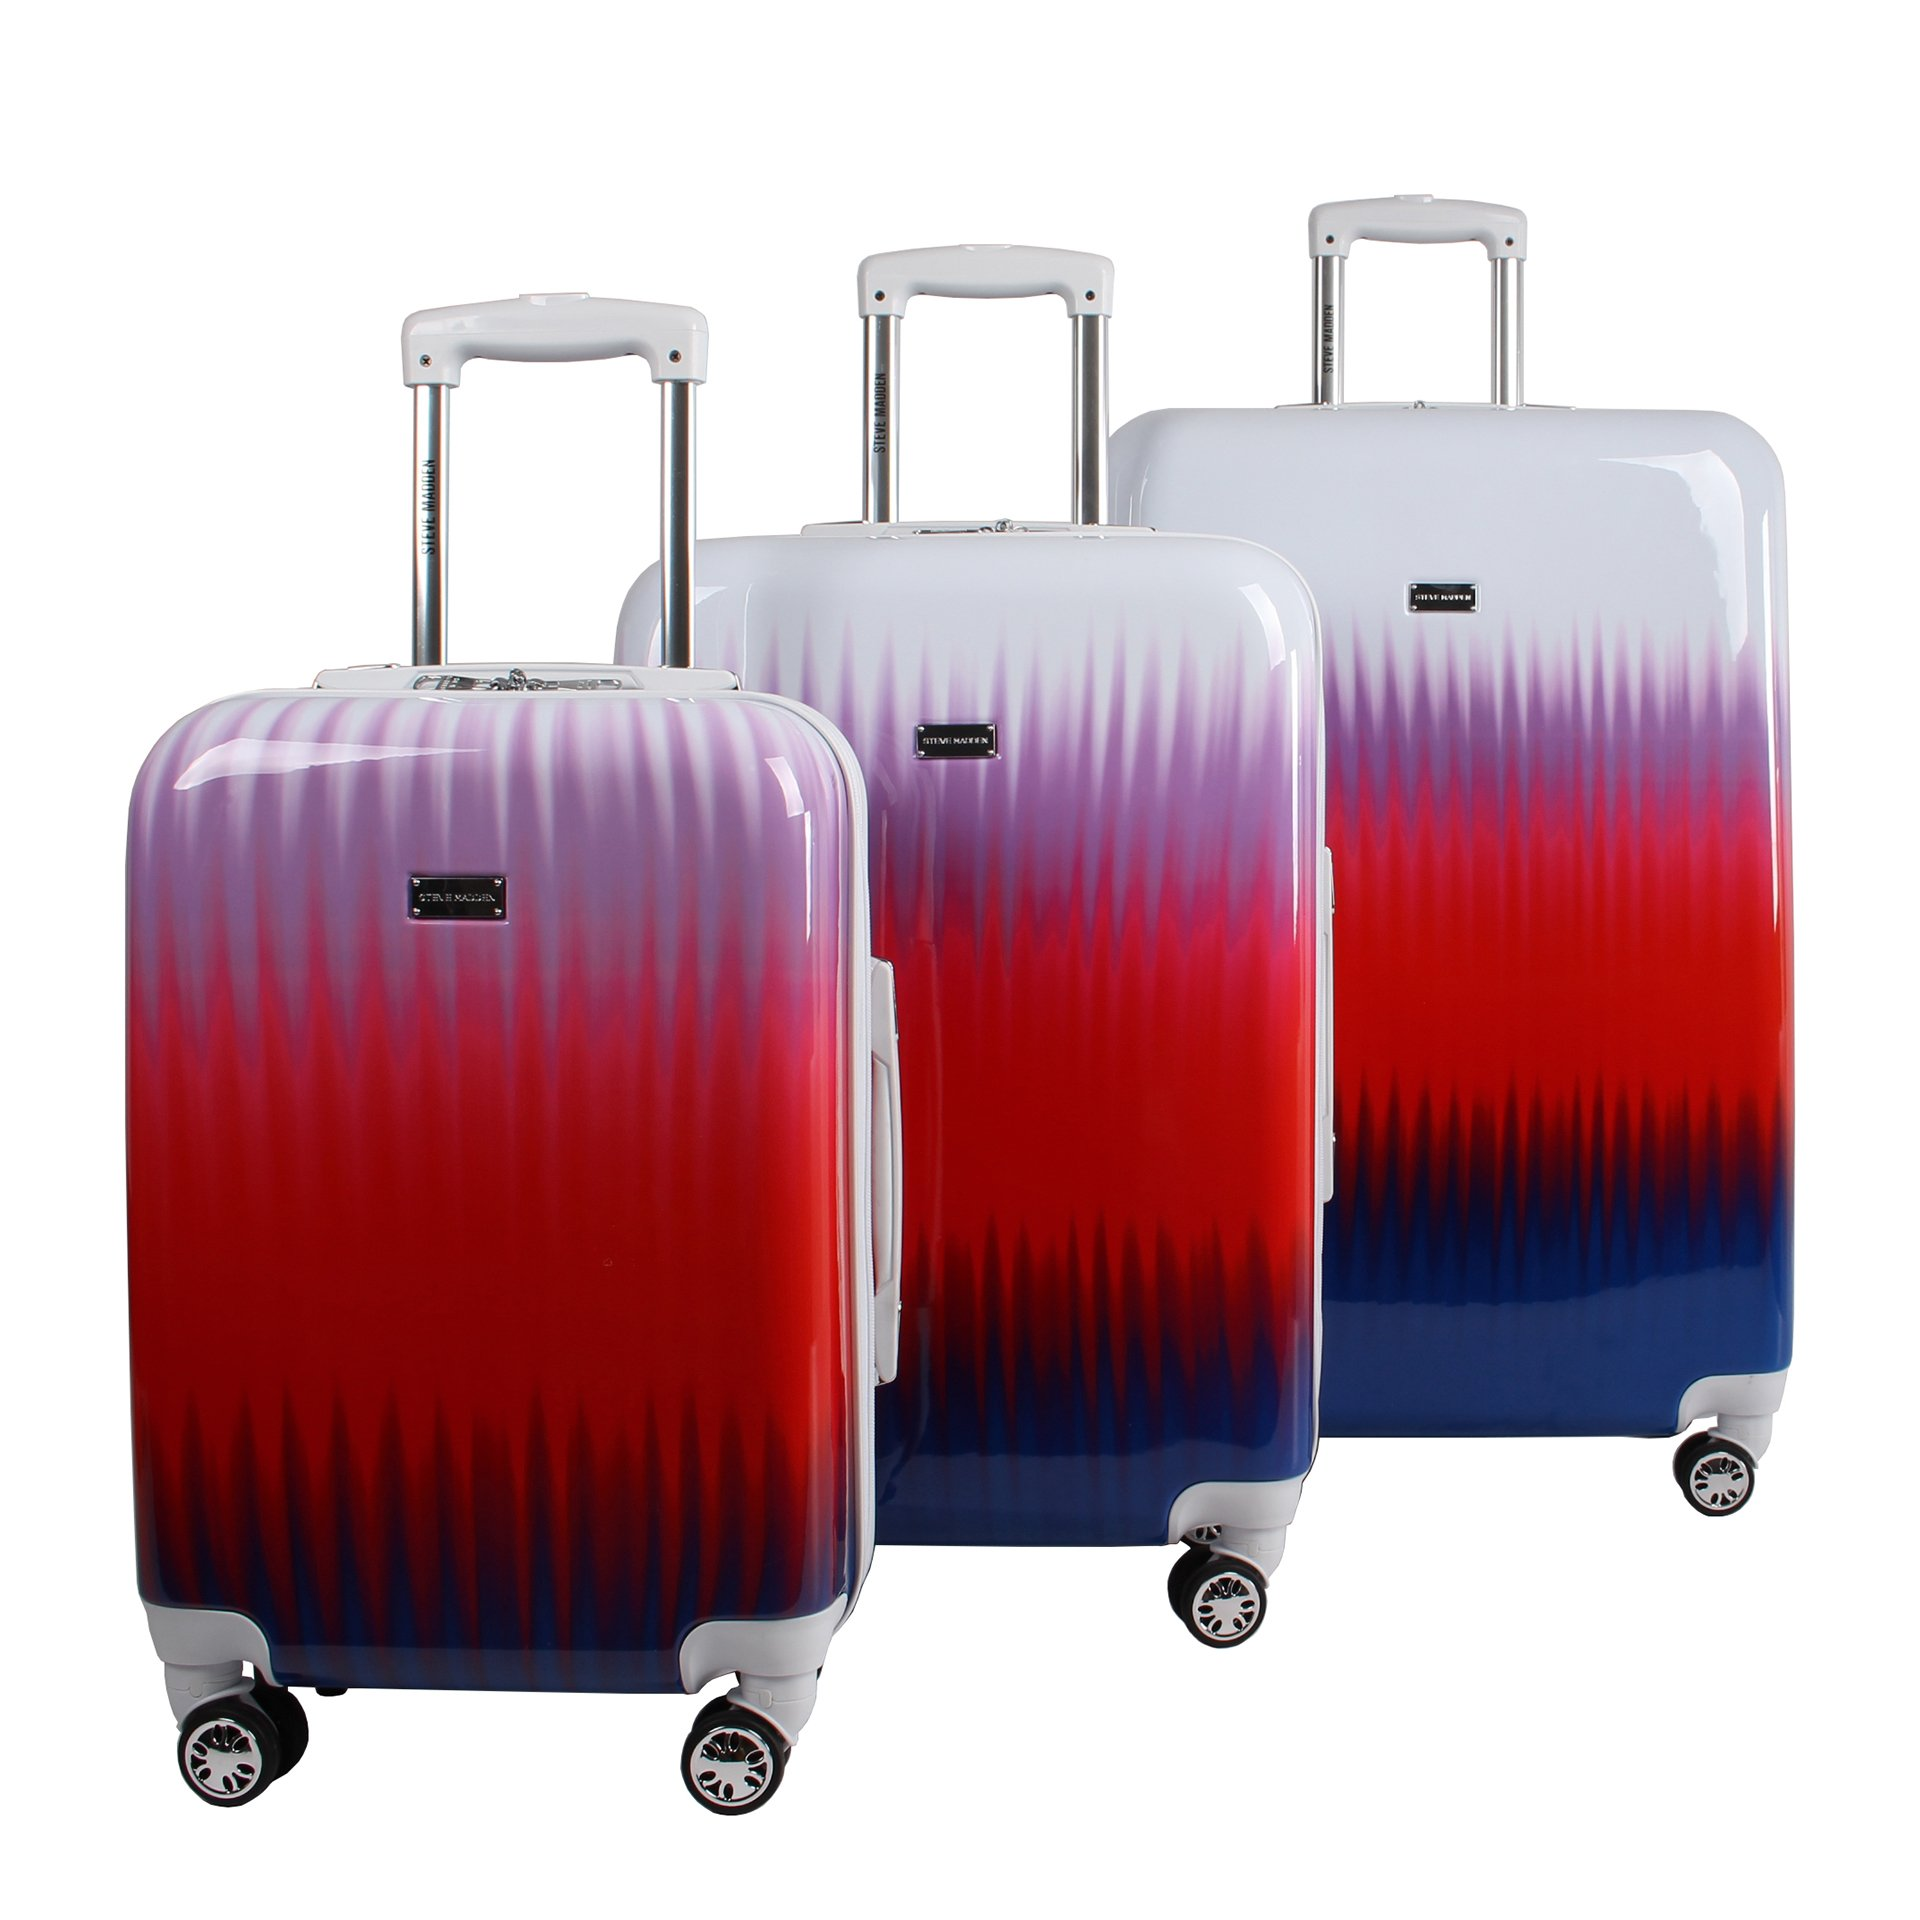 Steve Madden Luggage 3 Piece Hard Case Suitcase Set With Spinner Wheels (Spikes) by Steve Madden